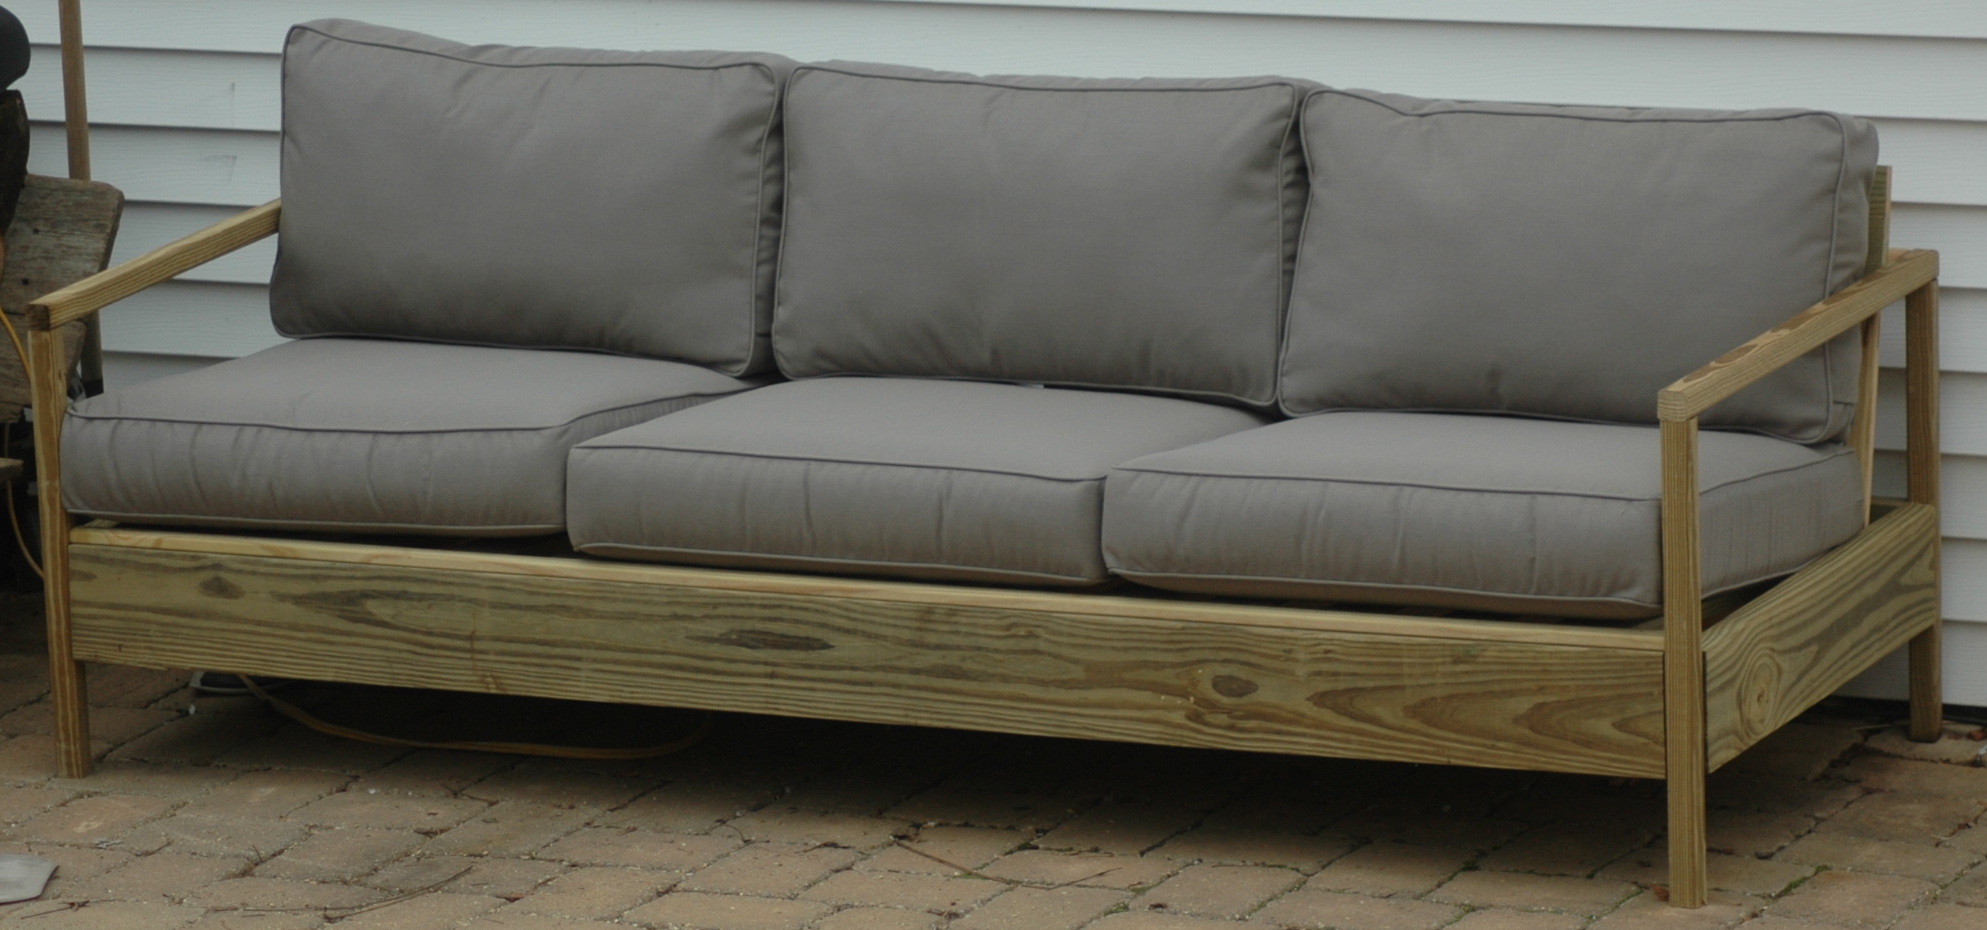 Diy outdoor sofa - Diy Outdoor Sofa